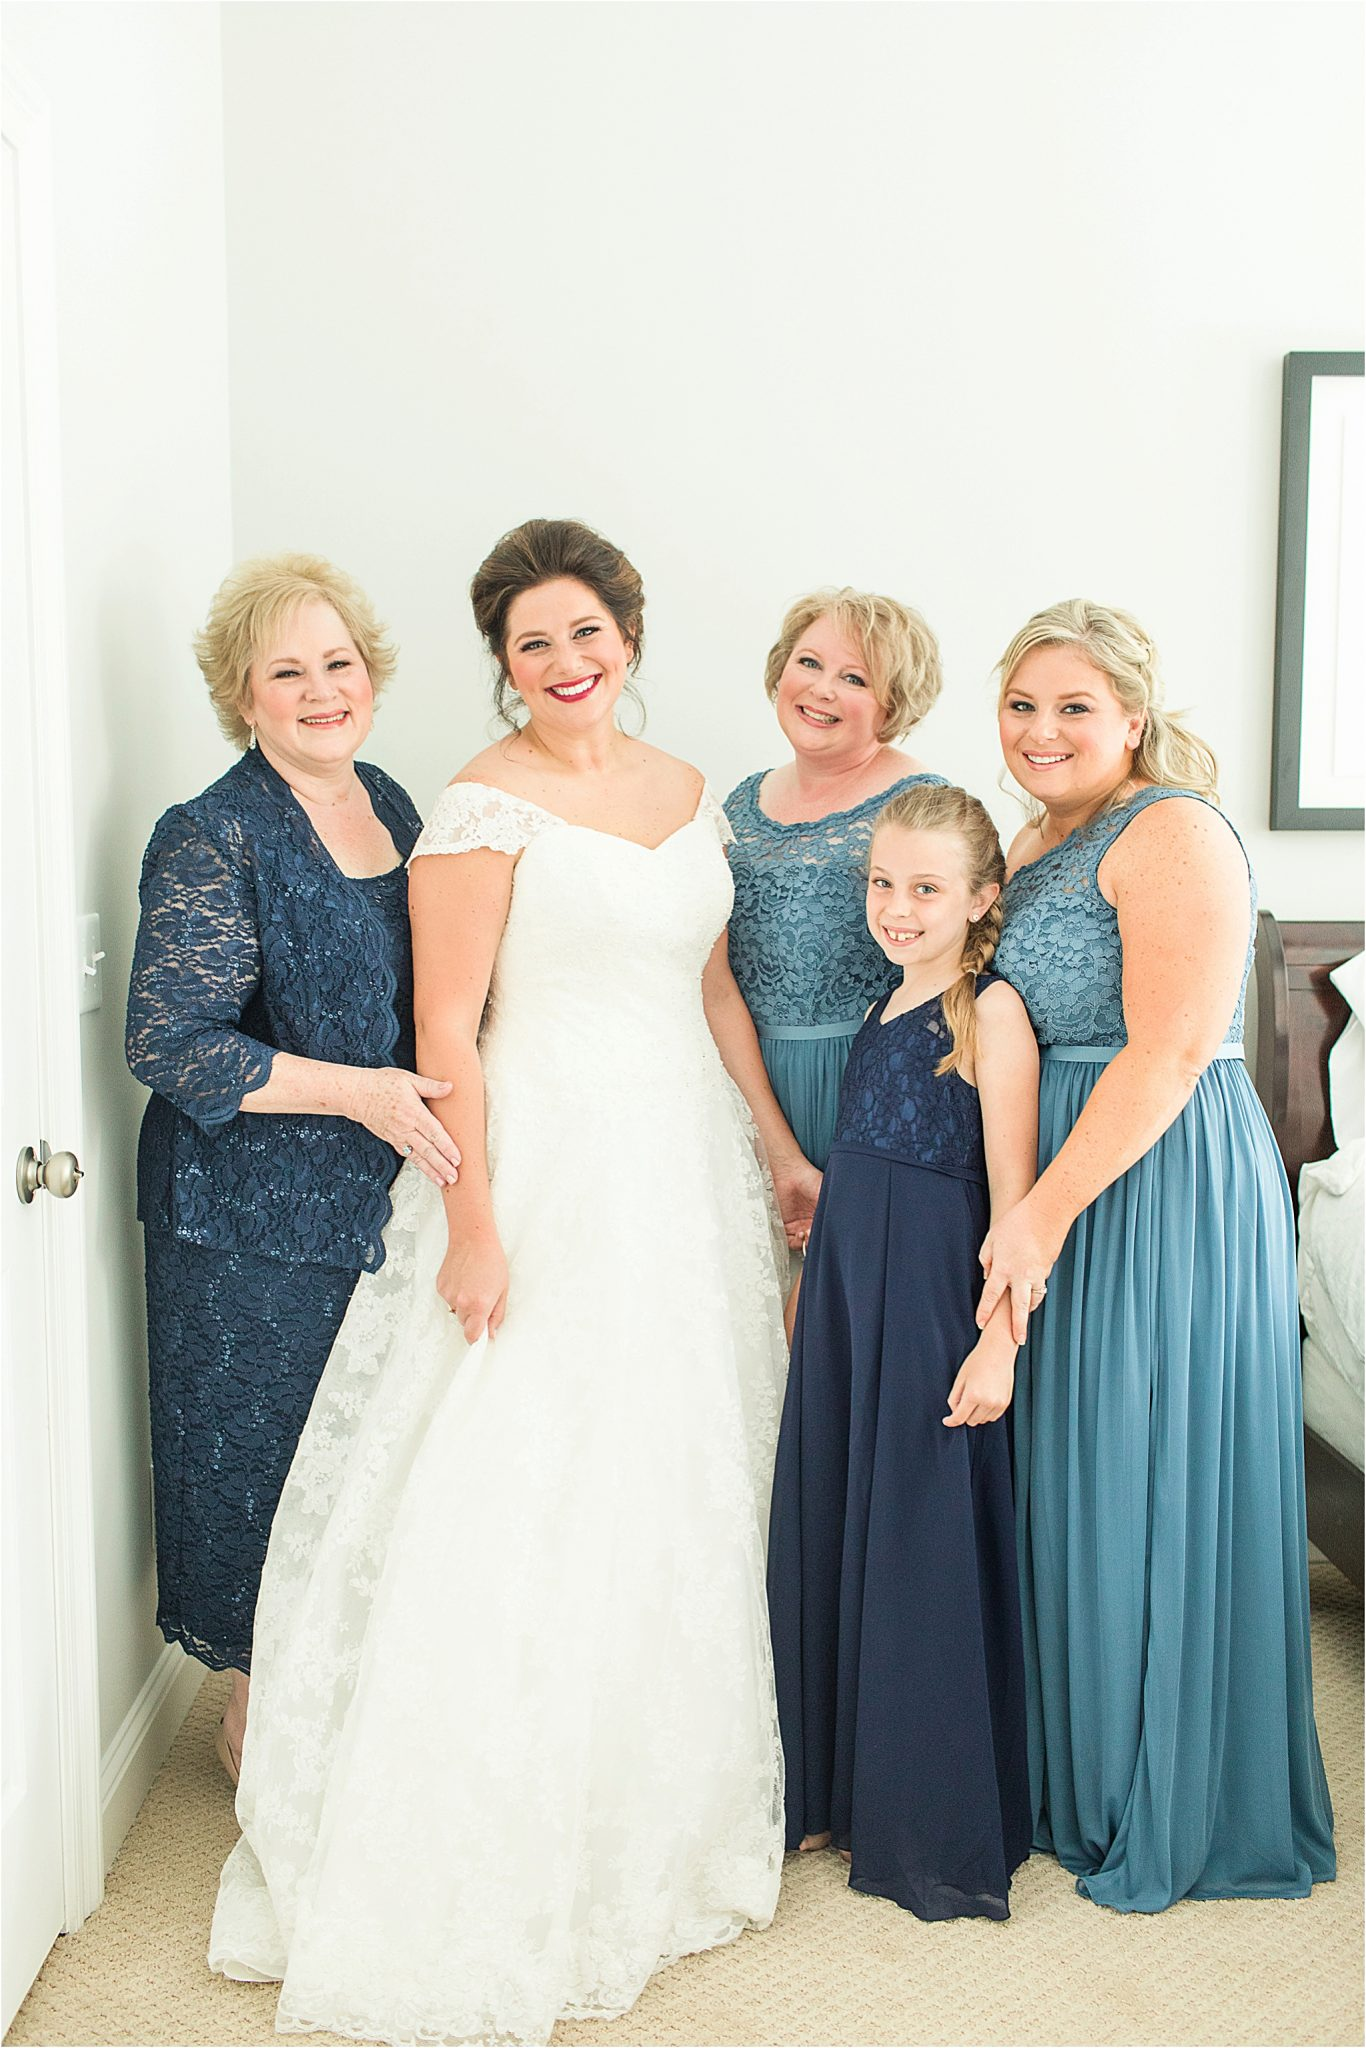 Pastel Themed Wedding-The Chapel at the Waters-Montgomery Alabama Photographer-Miles & Meredyth-Blue Themed Wedding-Bridesmaids Dresses-Wedding Dress